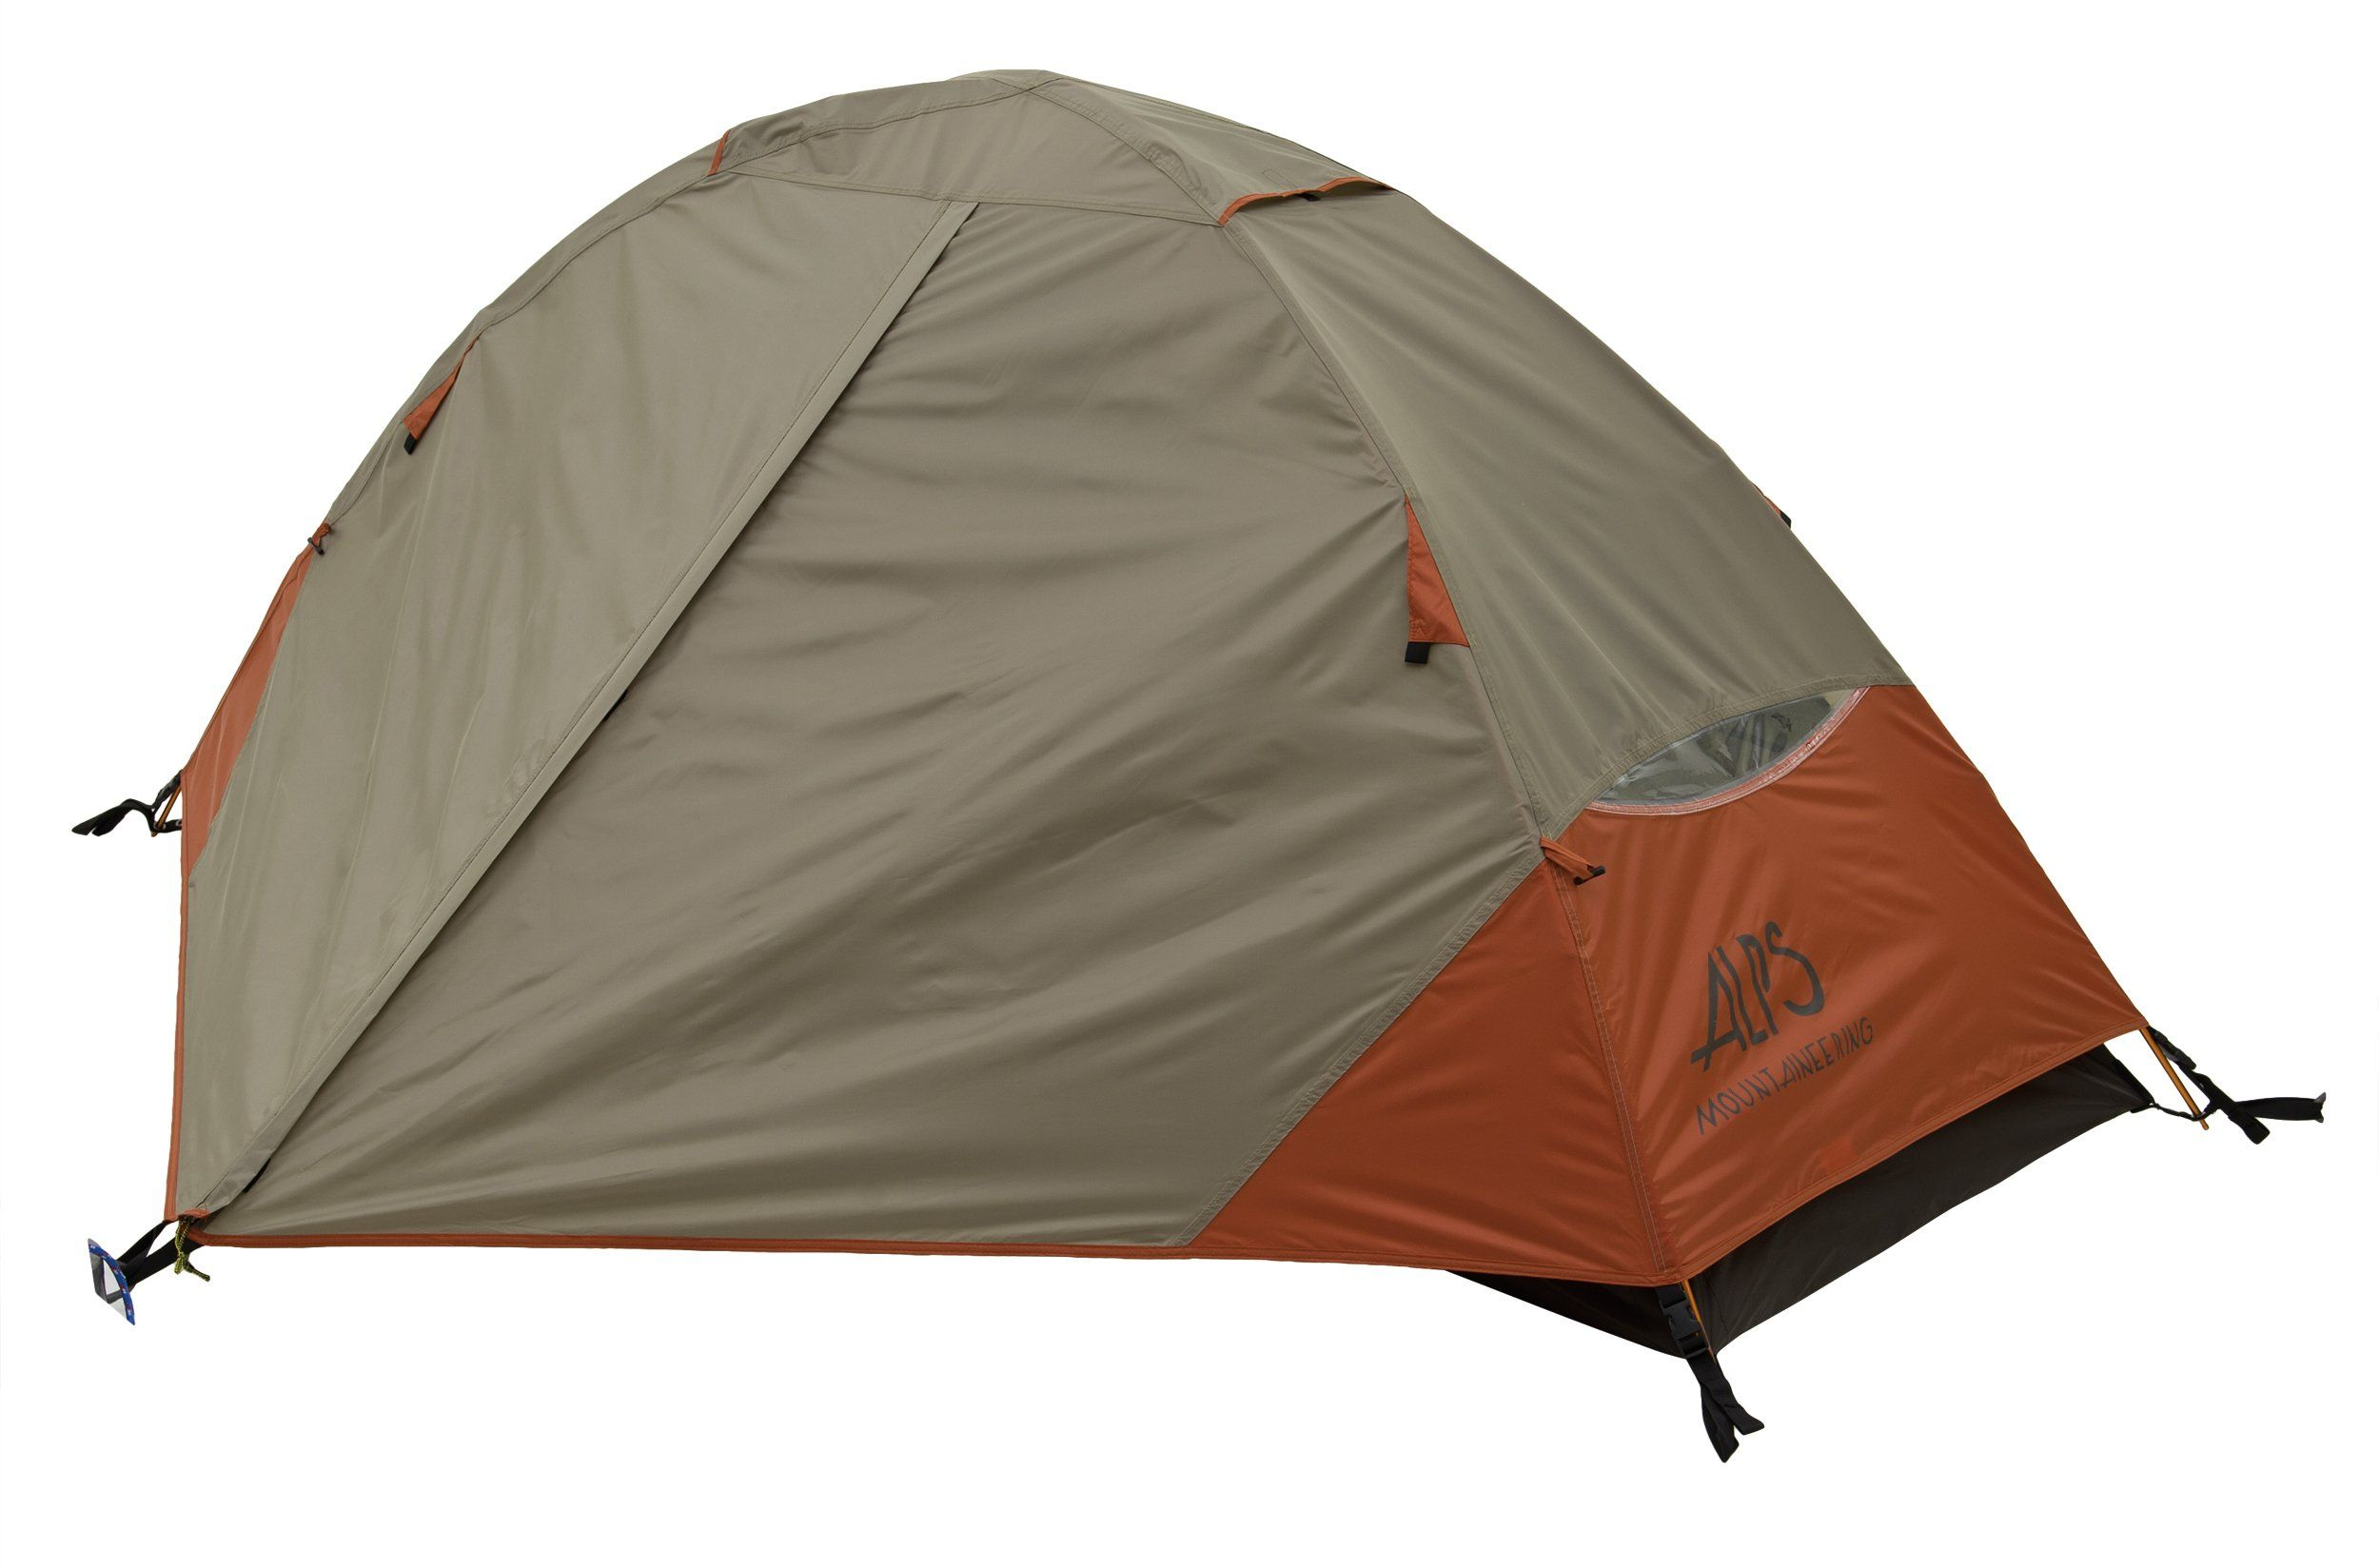 Amazon.com  ALPS Mountaineering 5024617 Lynx 1-Person Tent  Backpacking Tents   sc 1 st  Pinterest & Amazon.com : ALPS Mountaineering 5024617 Lynx 1-Person Tent ...